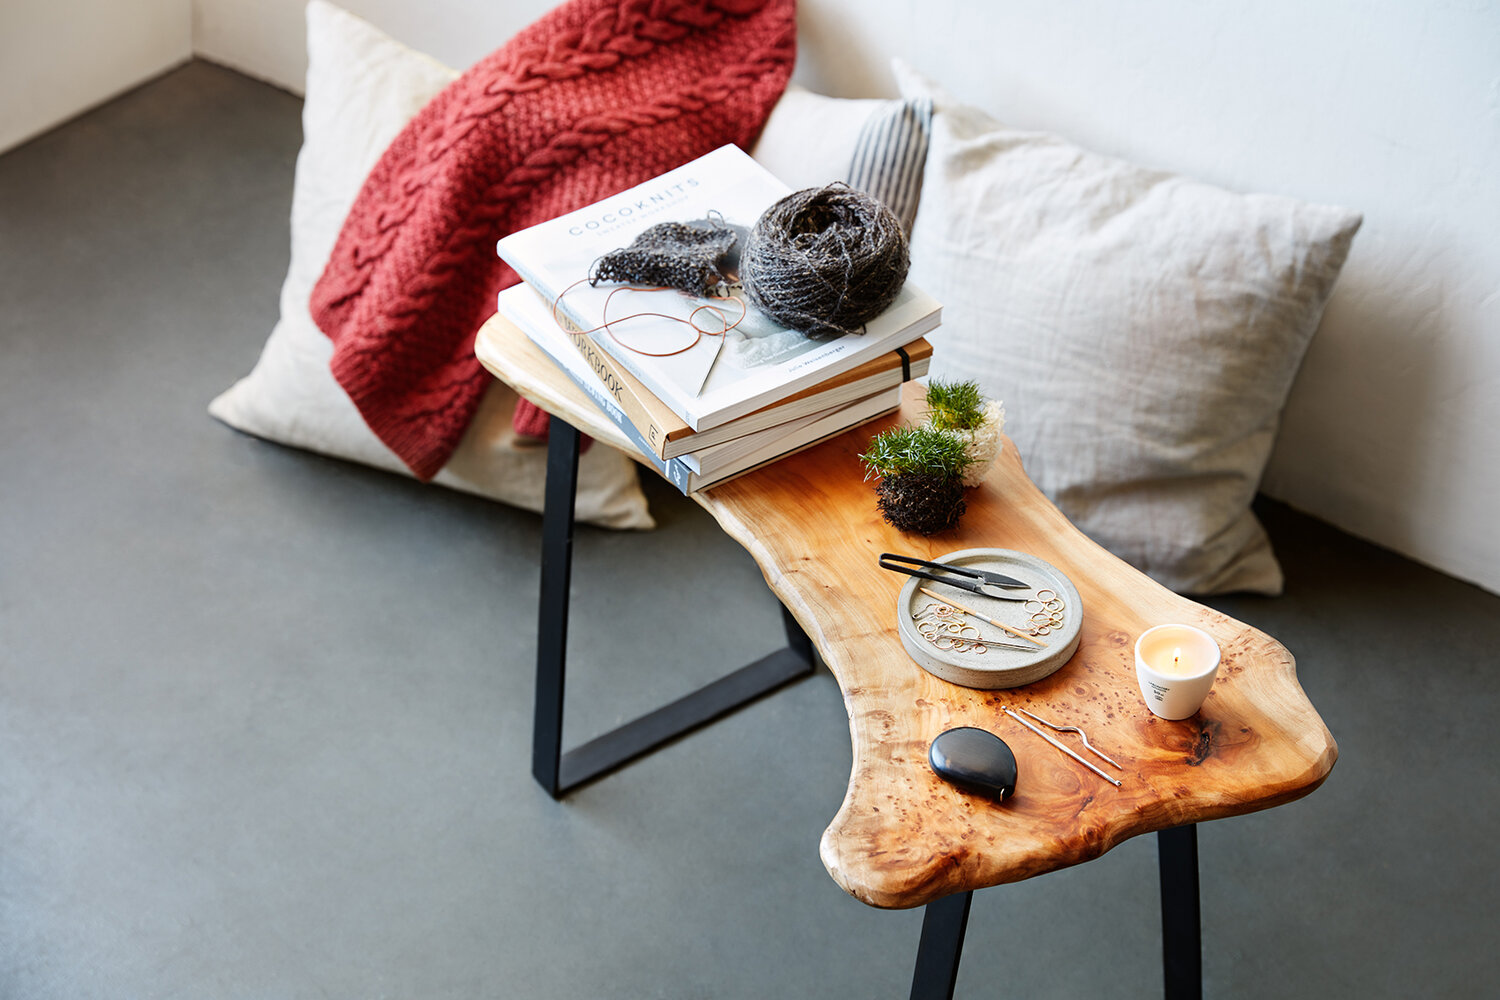 CocoKnits_StillLife_Bench_Candle.jpg